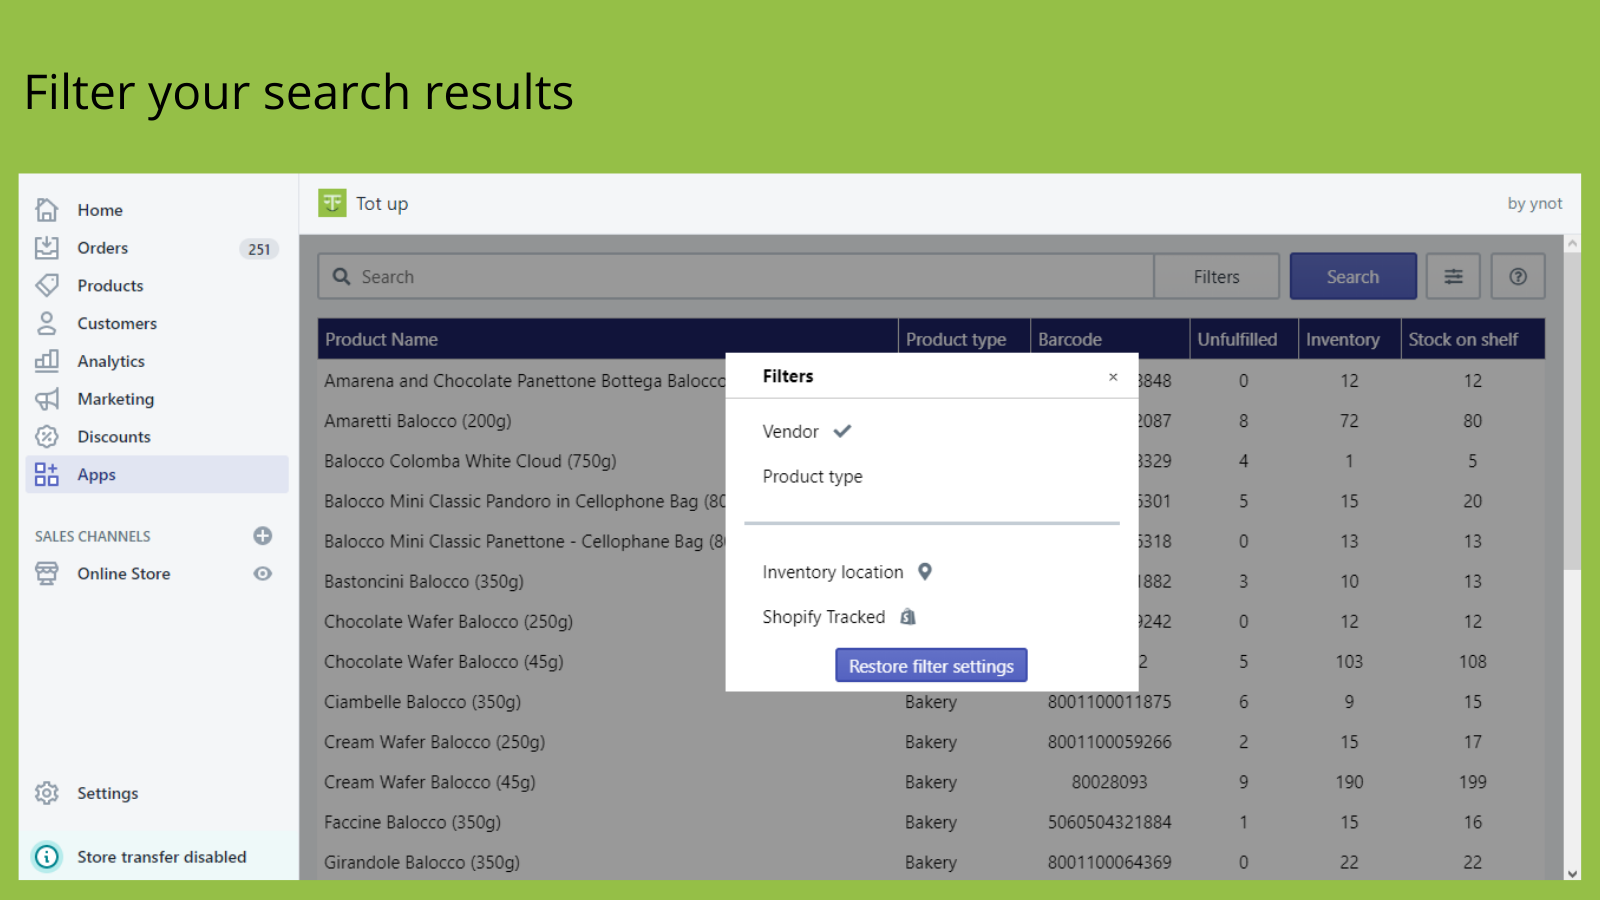 Filter your search results